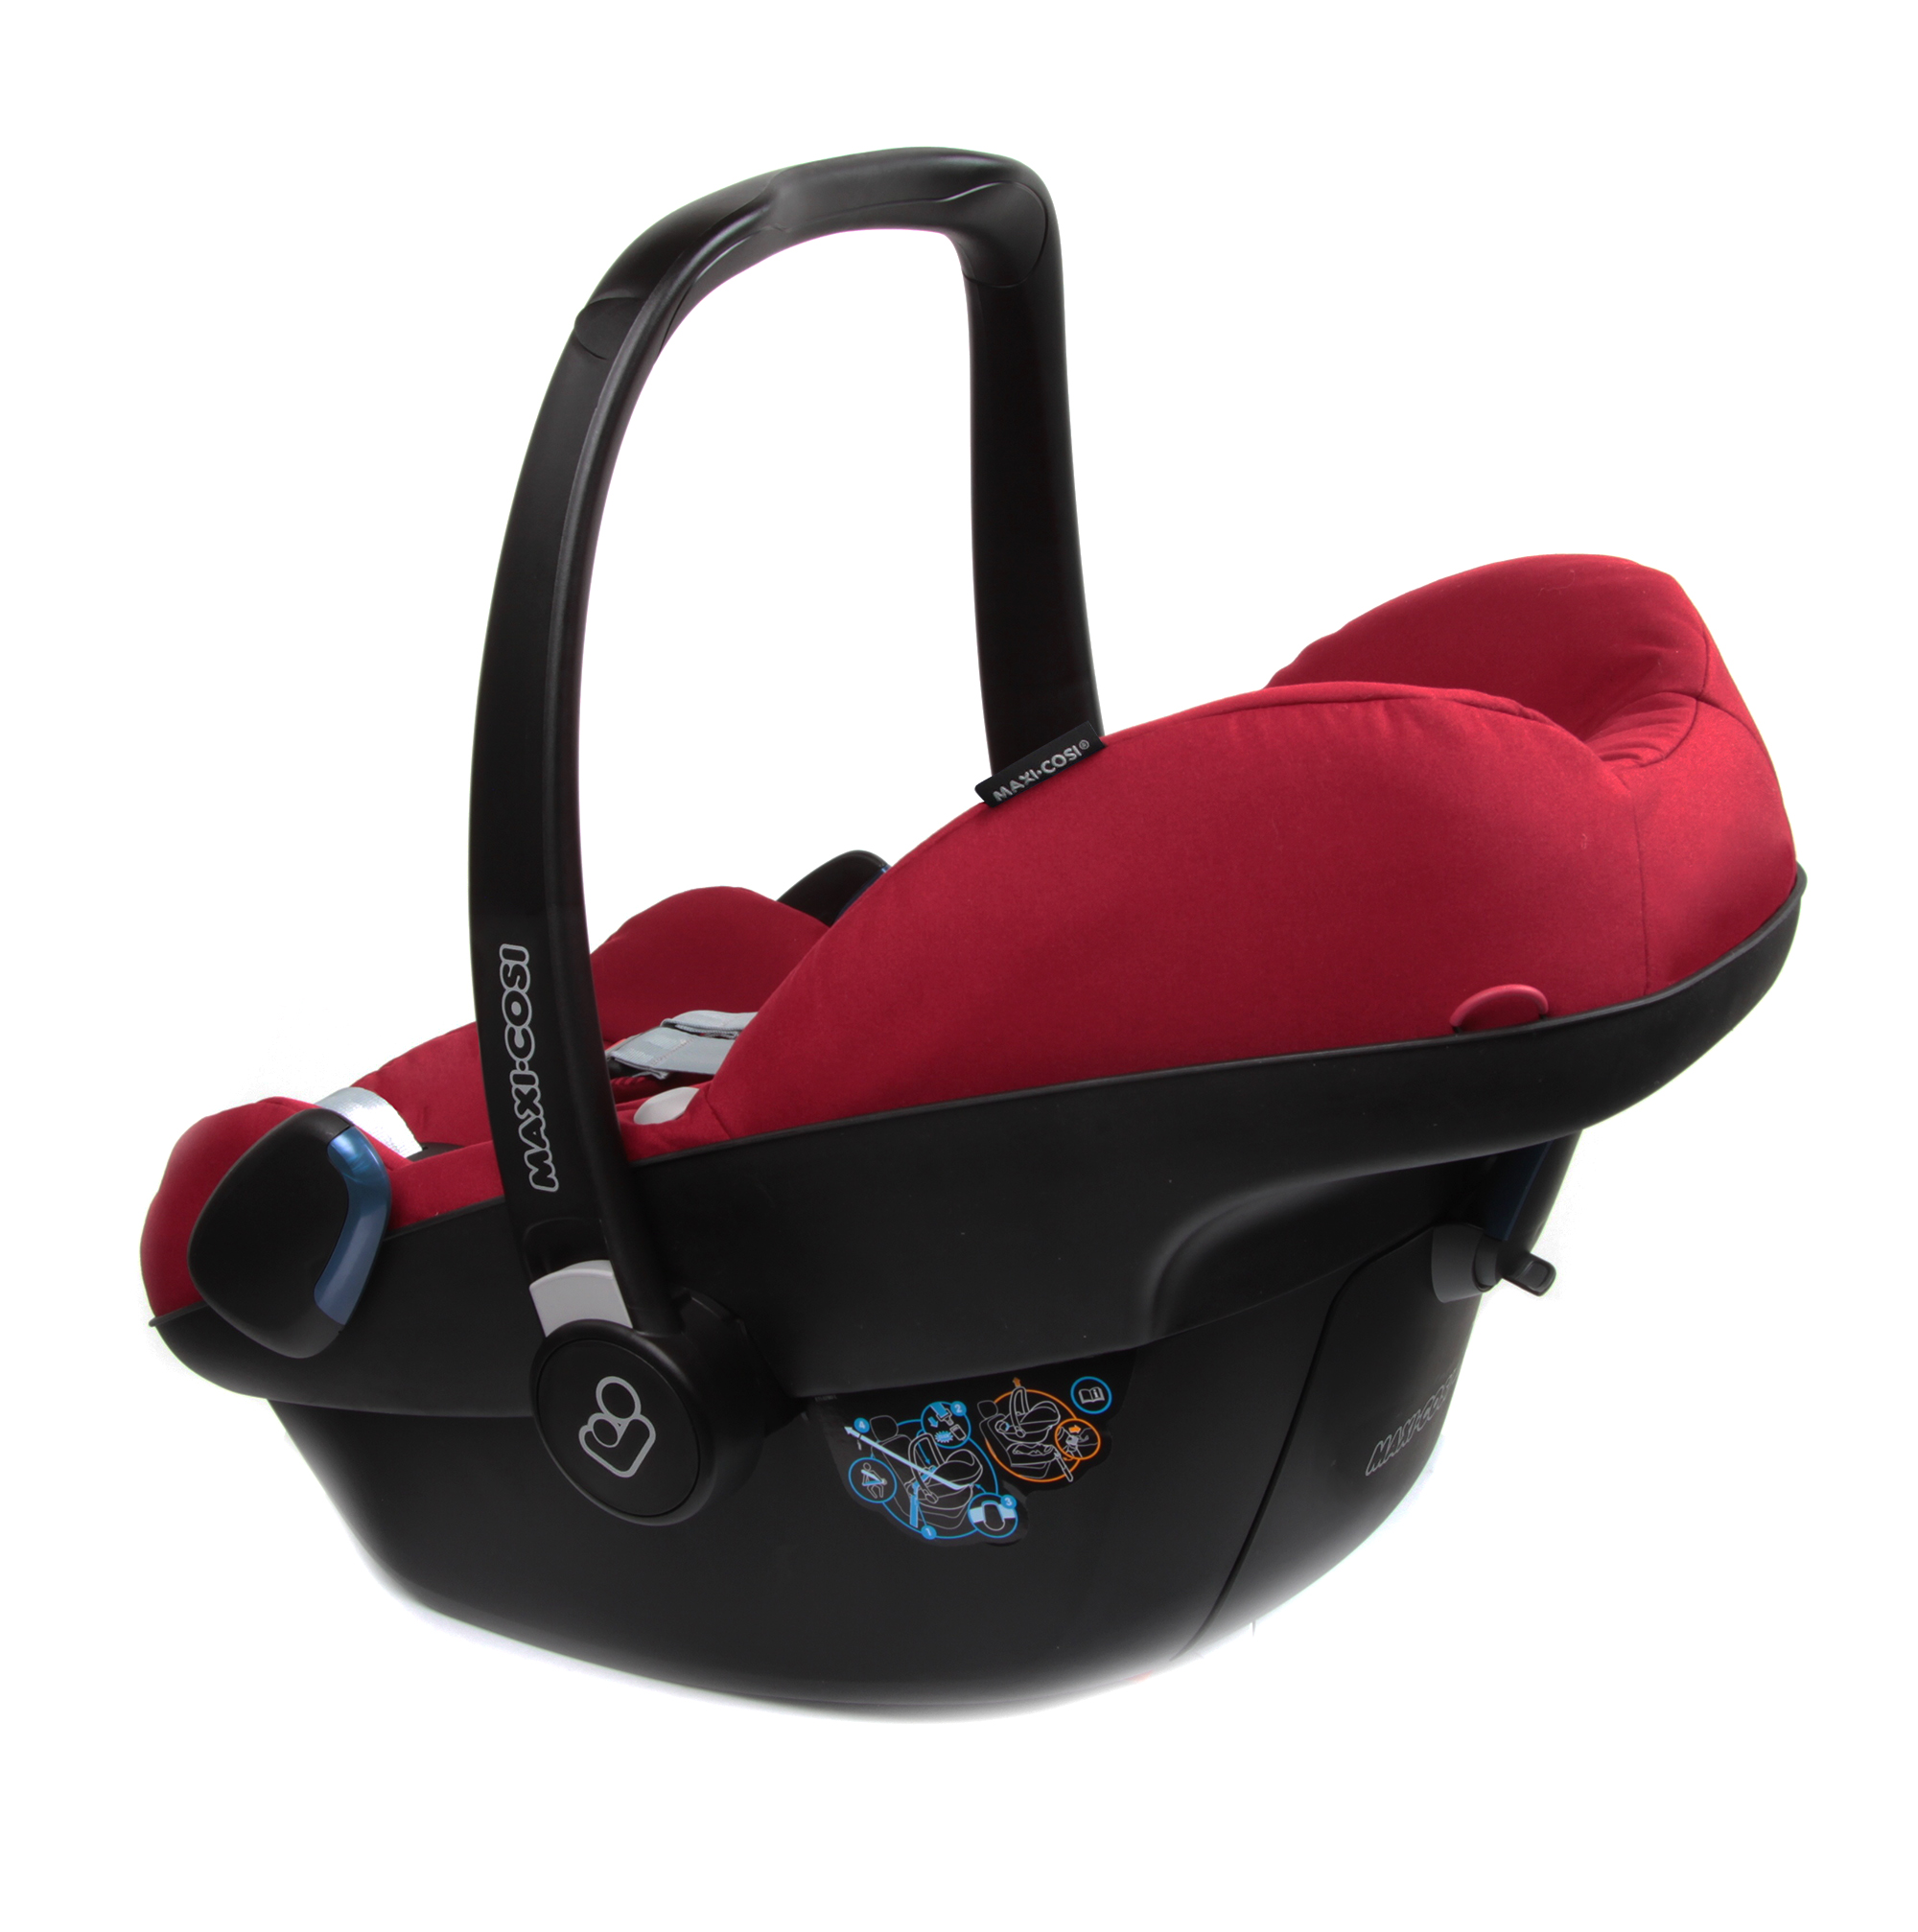 robin red maxi cosi car seat maxi cosi child car seat tobi 2017 robin red buy at maxi cosi. Black Bedroom Furniture Sets. Home Design Ideas